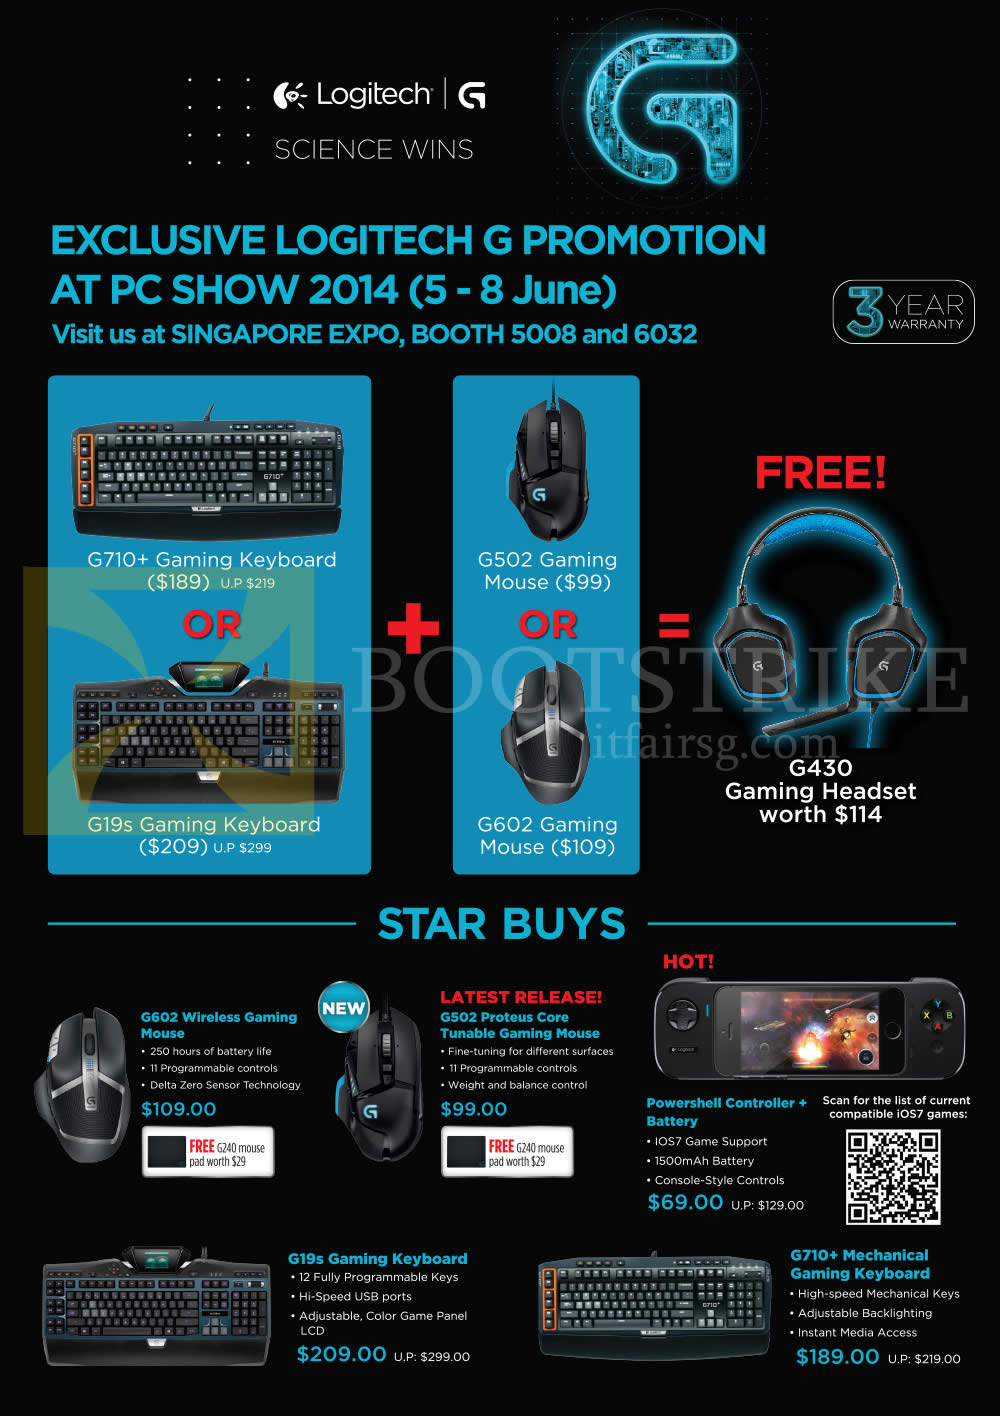 PC SHOW 2014 price list image brochure of Logitech Gaming Mouse, Keyboards, Powershell Controller, G602, G502, G19s, G710 Plus Mechanical Keyboard